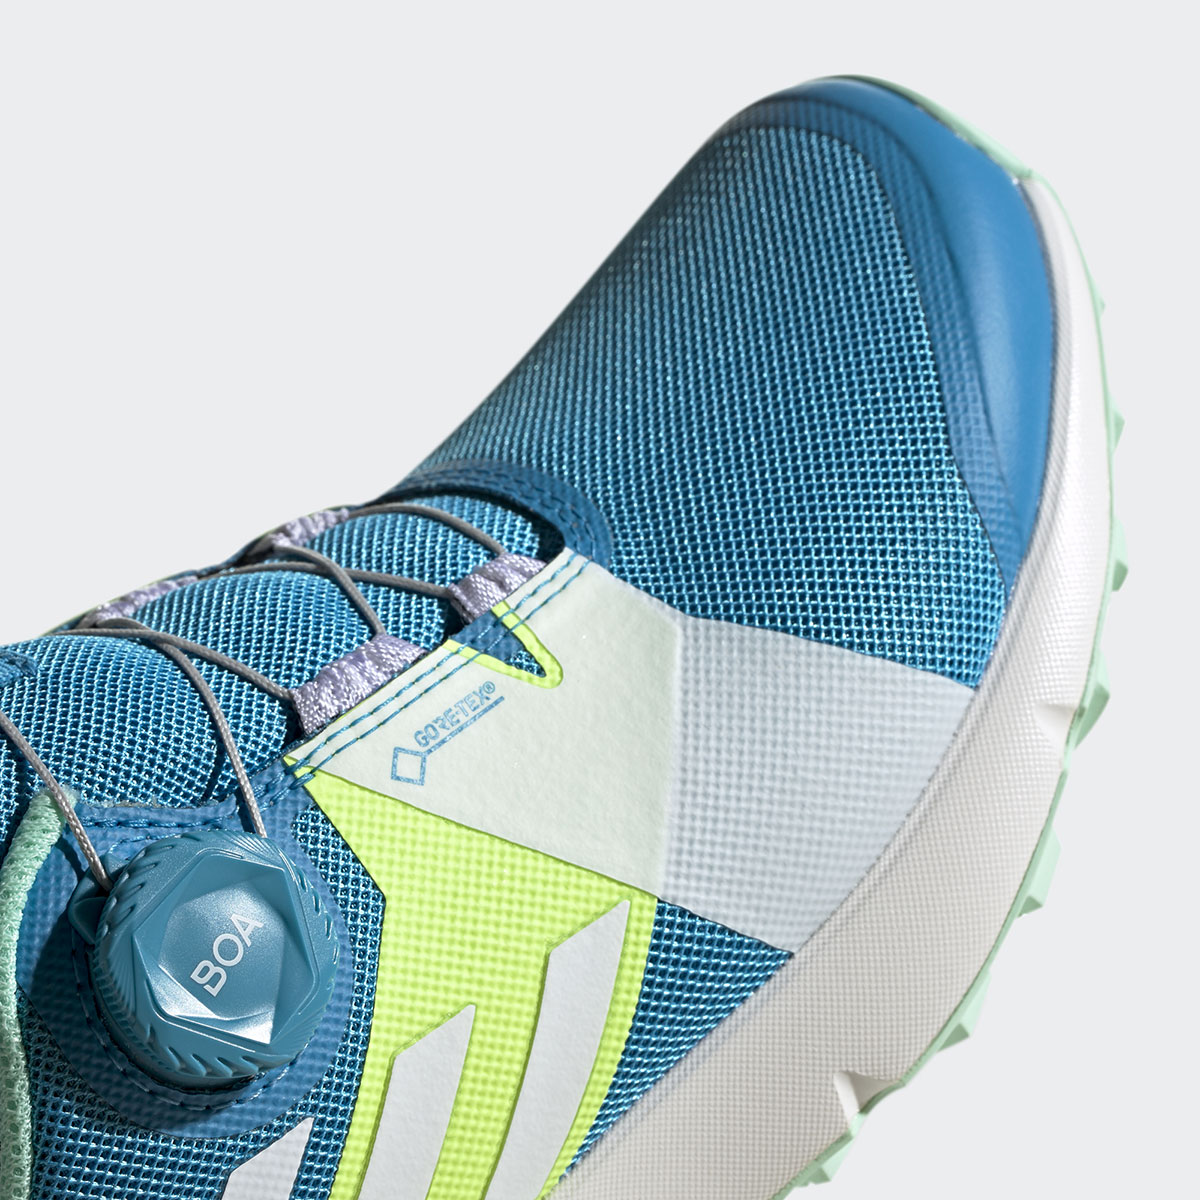 Womens adidas shoes Terrex Two Boa GTX in goretex for trail running. The Boa Closure System makes them easy to put on and off.